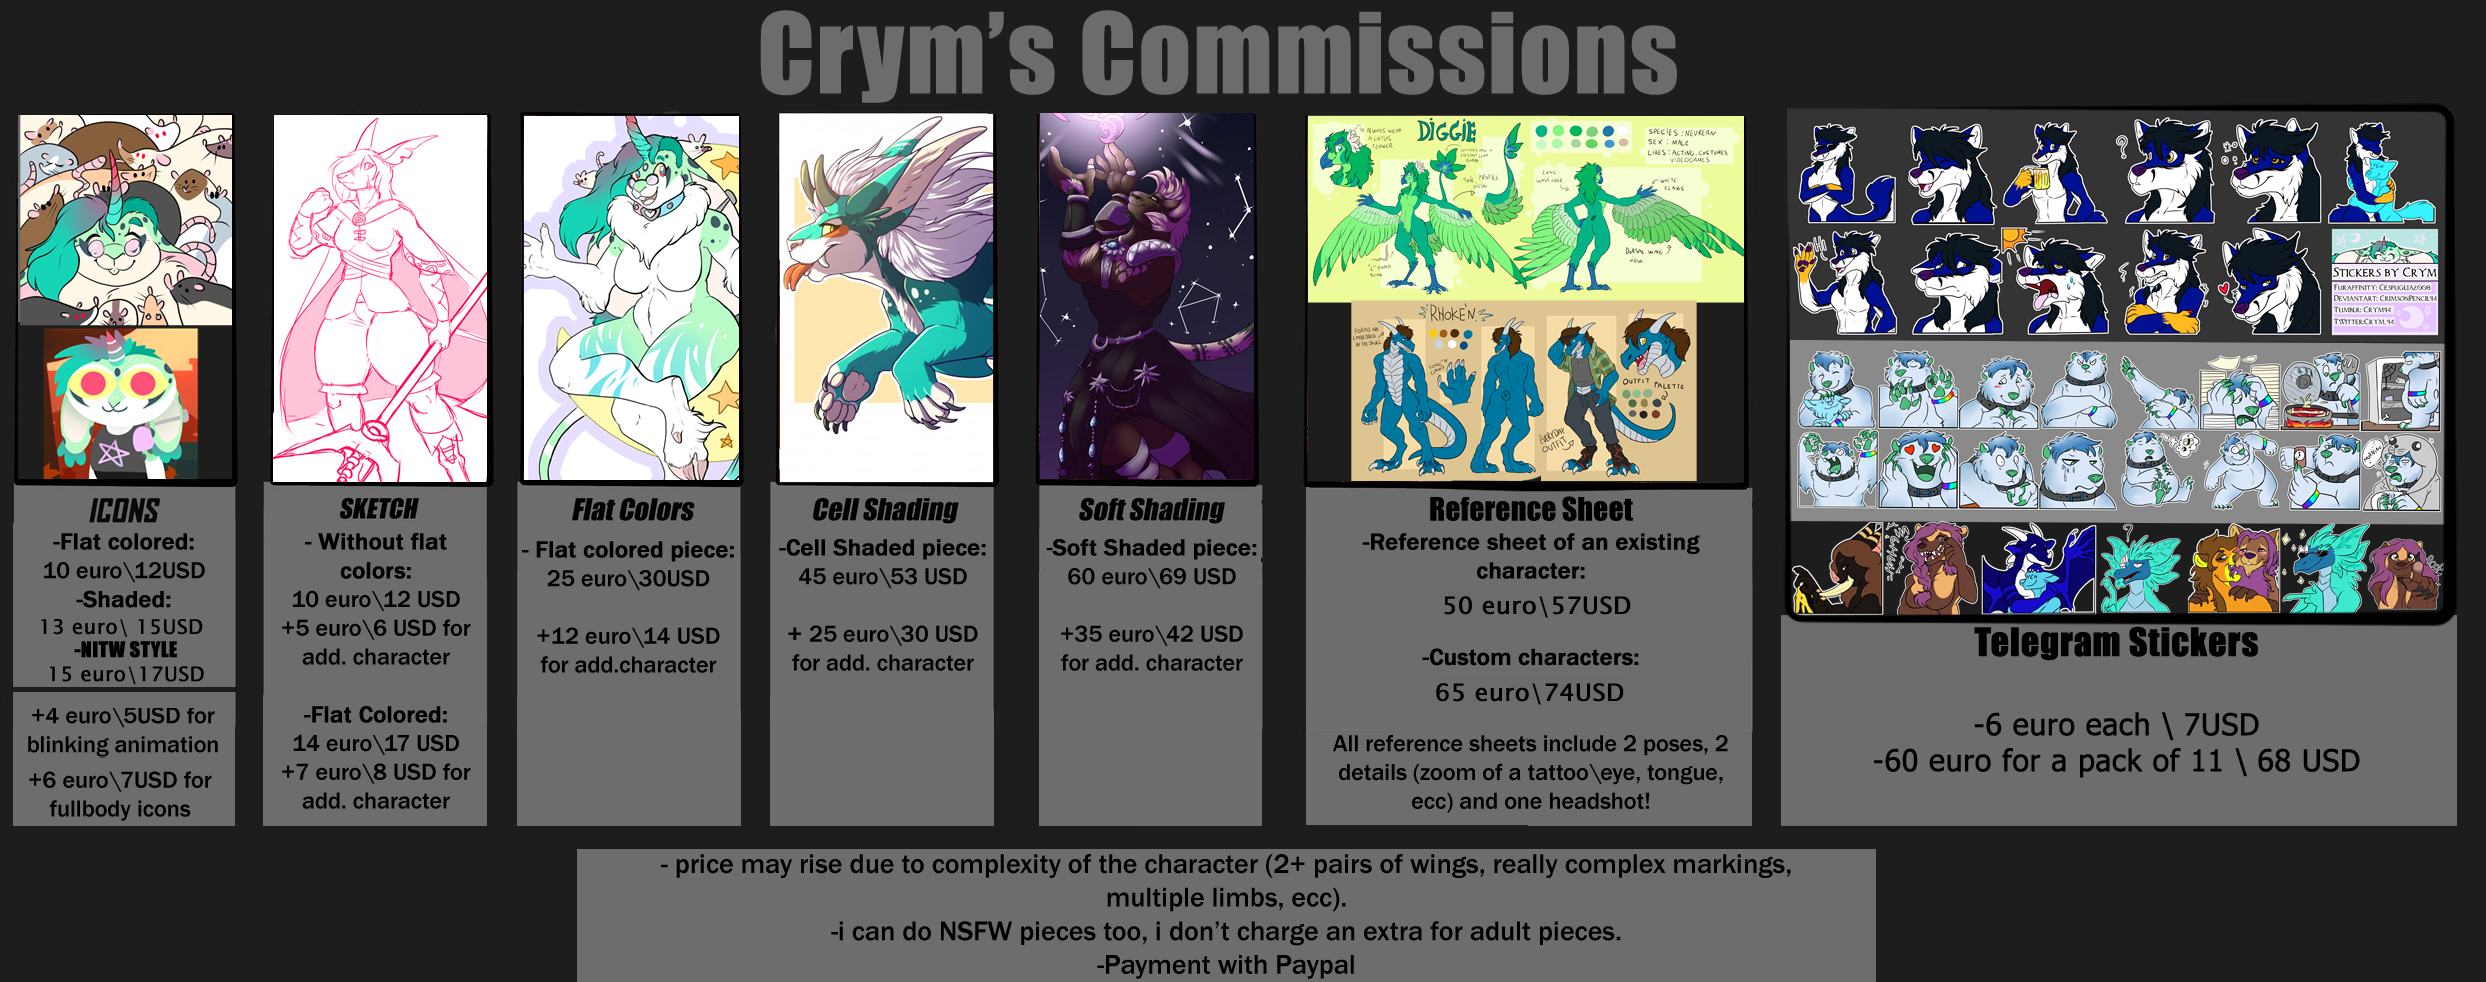 .:DIGITAL COMMISSIONS (OPENING ON THE 18TH):.